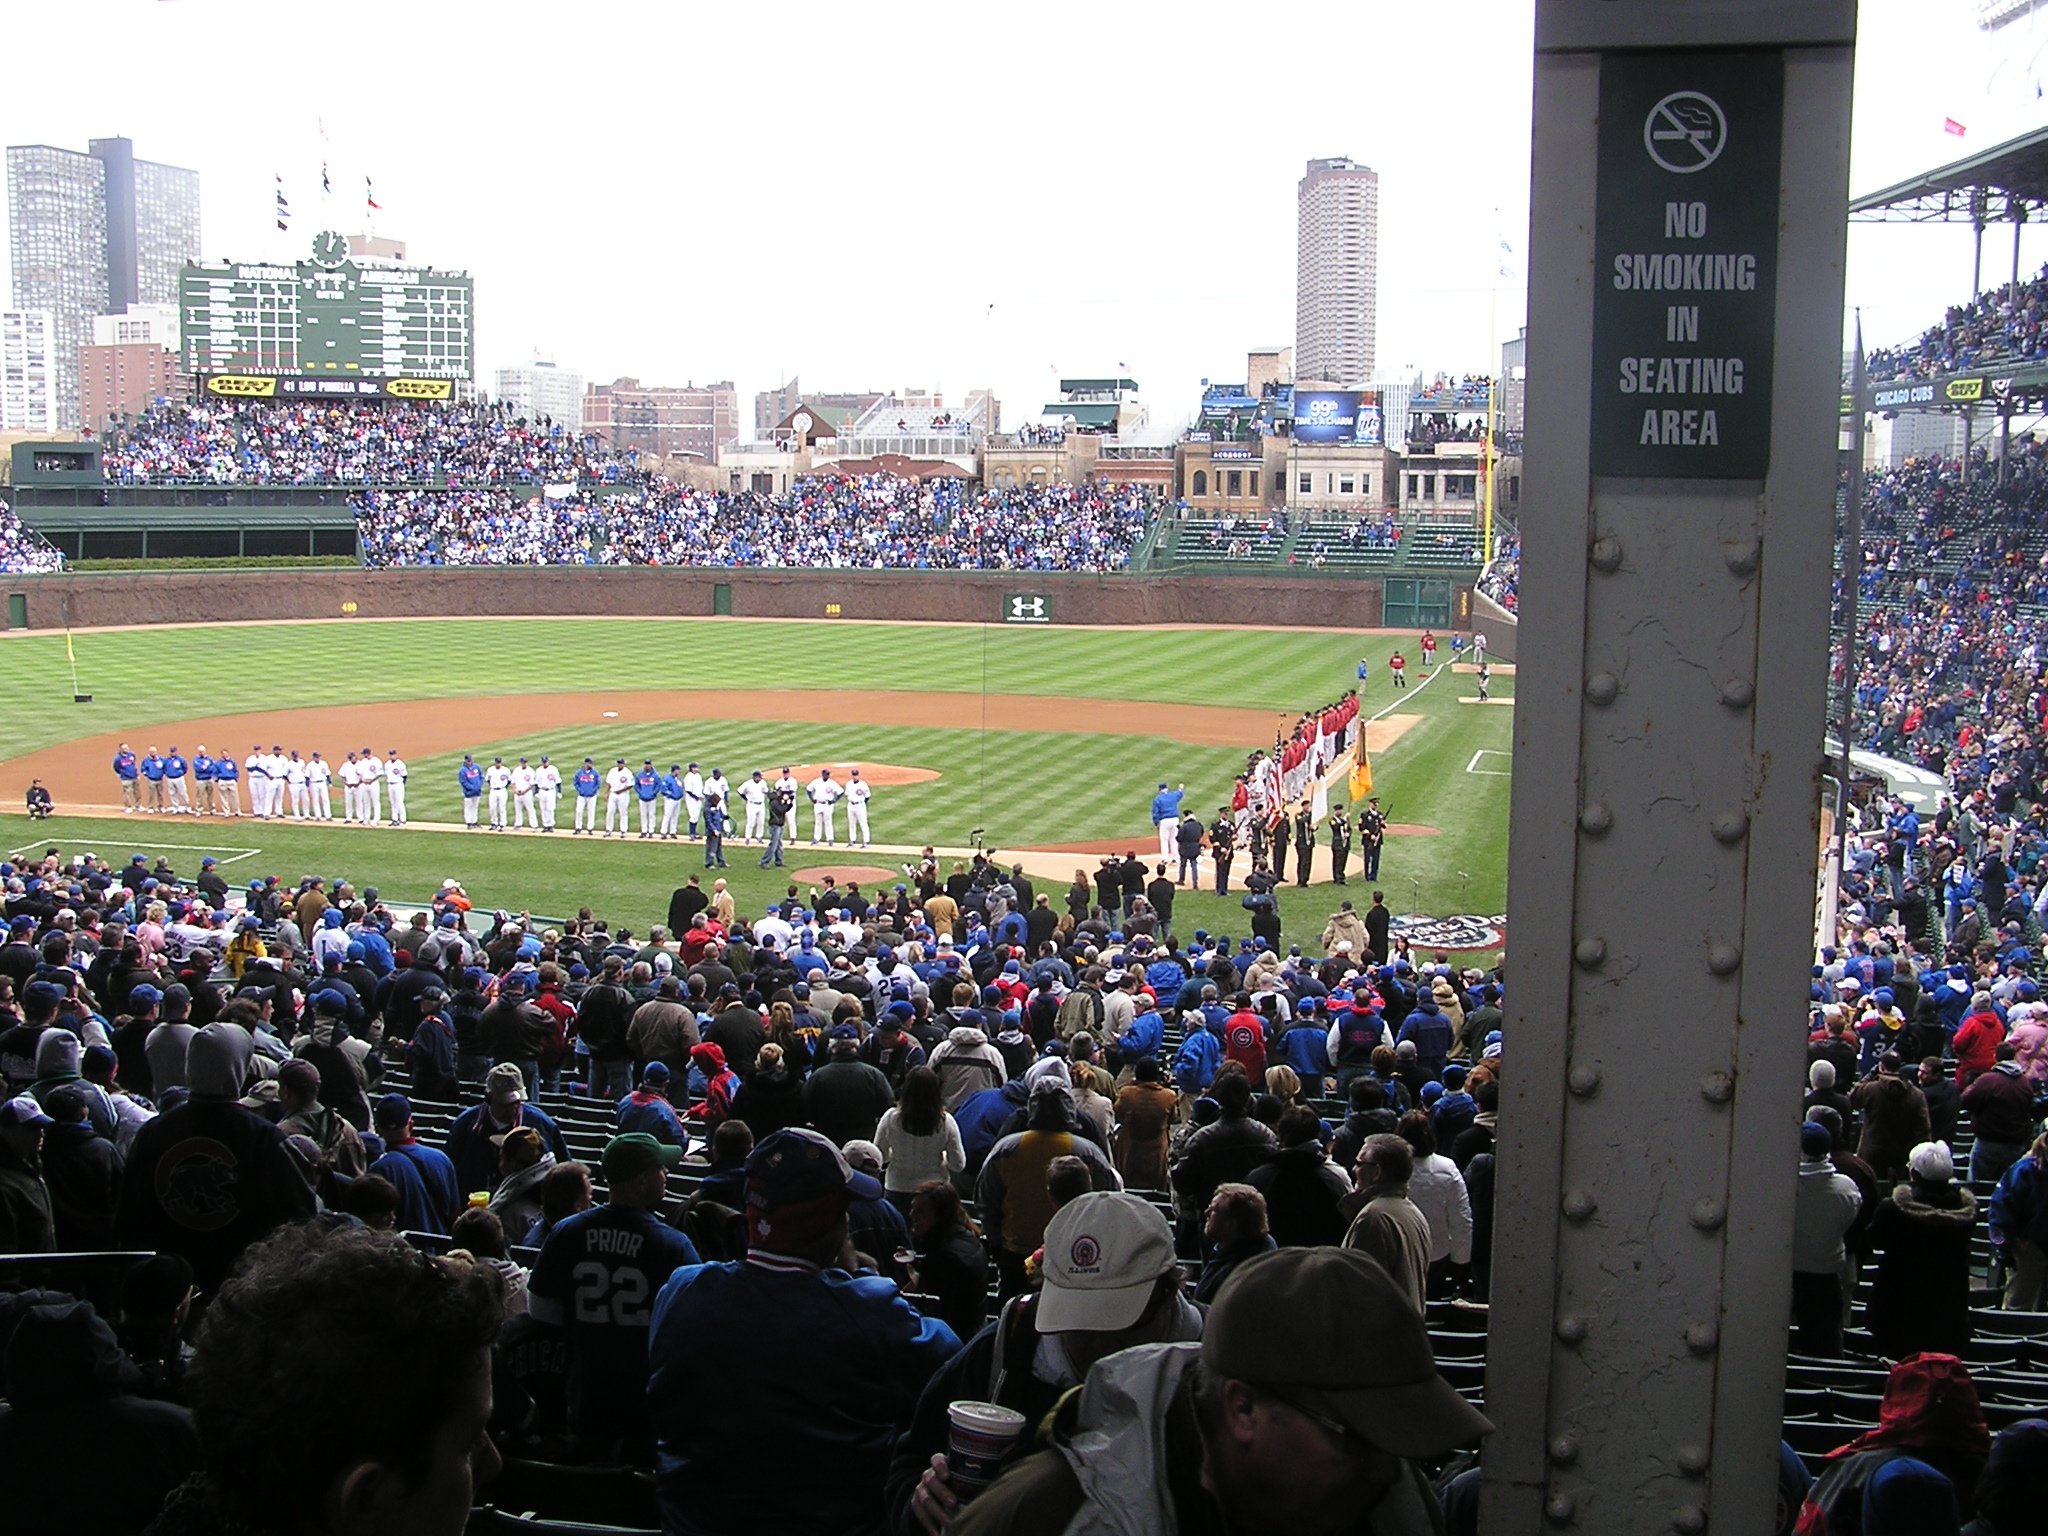 Opening Day 2007 - Wrigley Field, Chicago, Il